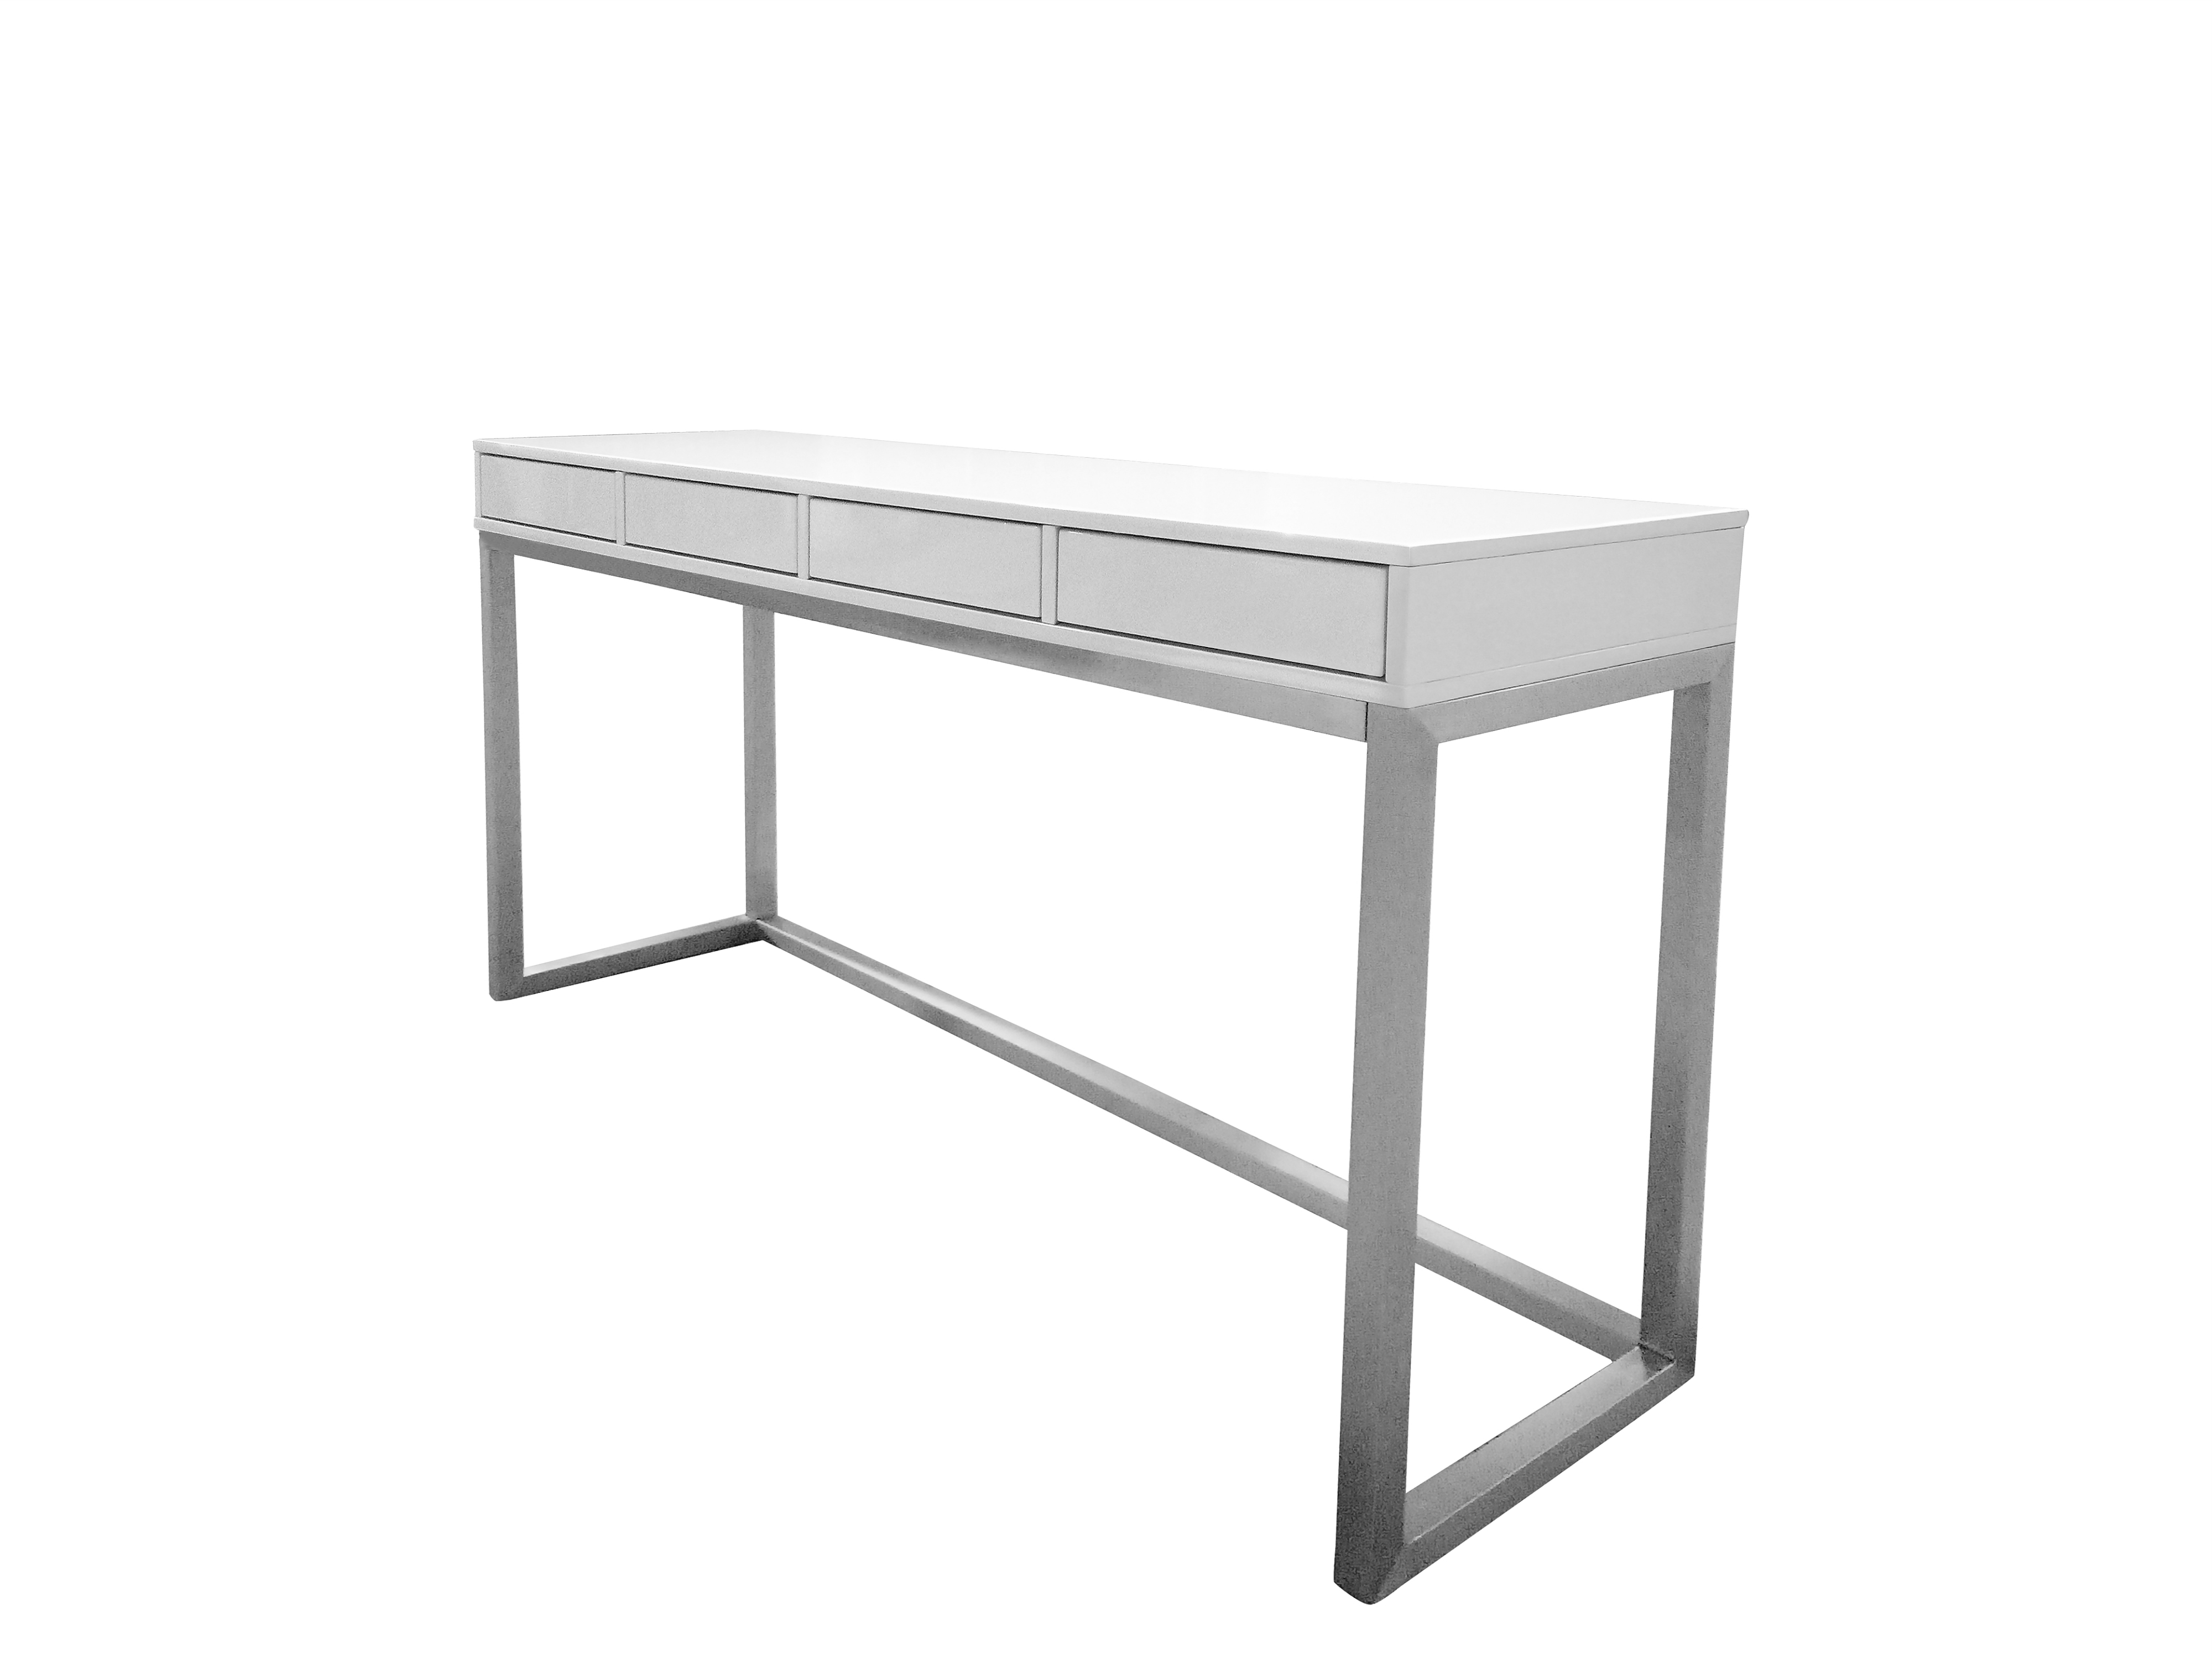 Miraculous Palco Sofa Table High Gloss White With Brushed Stainless Steel Gmtry Best Dining Table And Chair Ideas Images Gmtryco